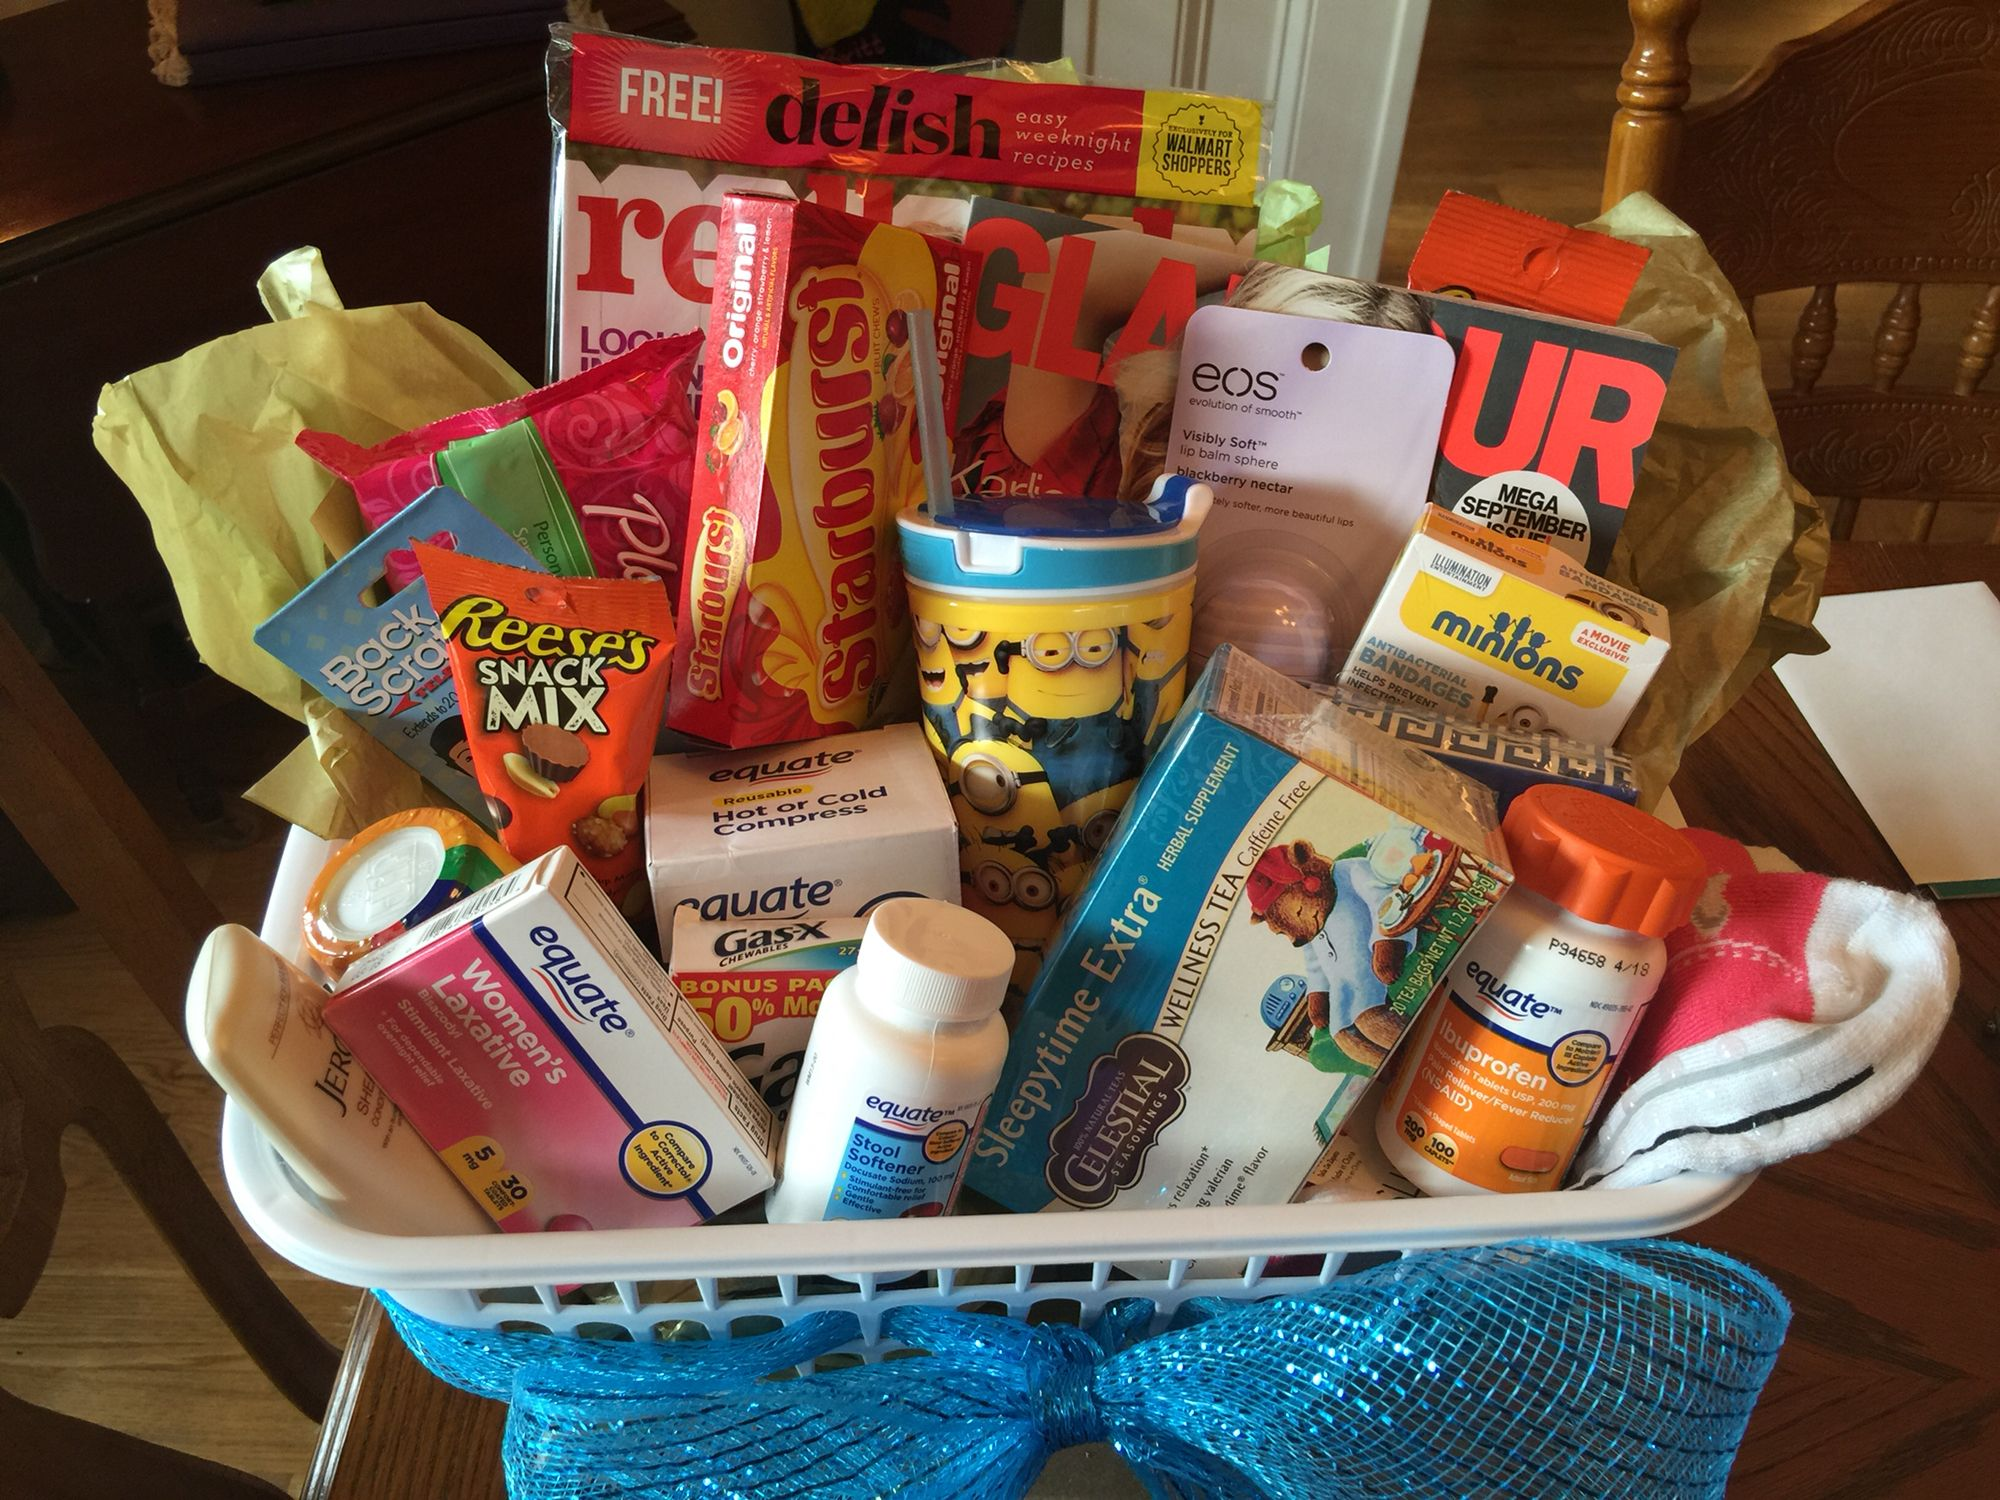 Hysterectomy Recovery Basket For My Hyster Sisters Hysterectomy Recovery Hysterectomy Surgery Recovery Gift